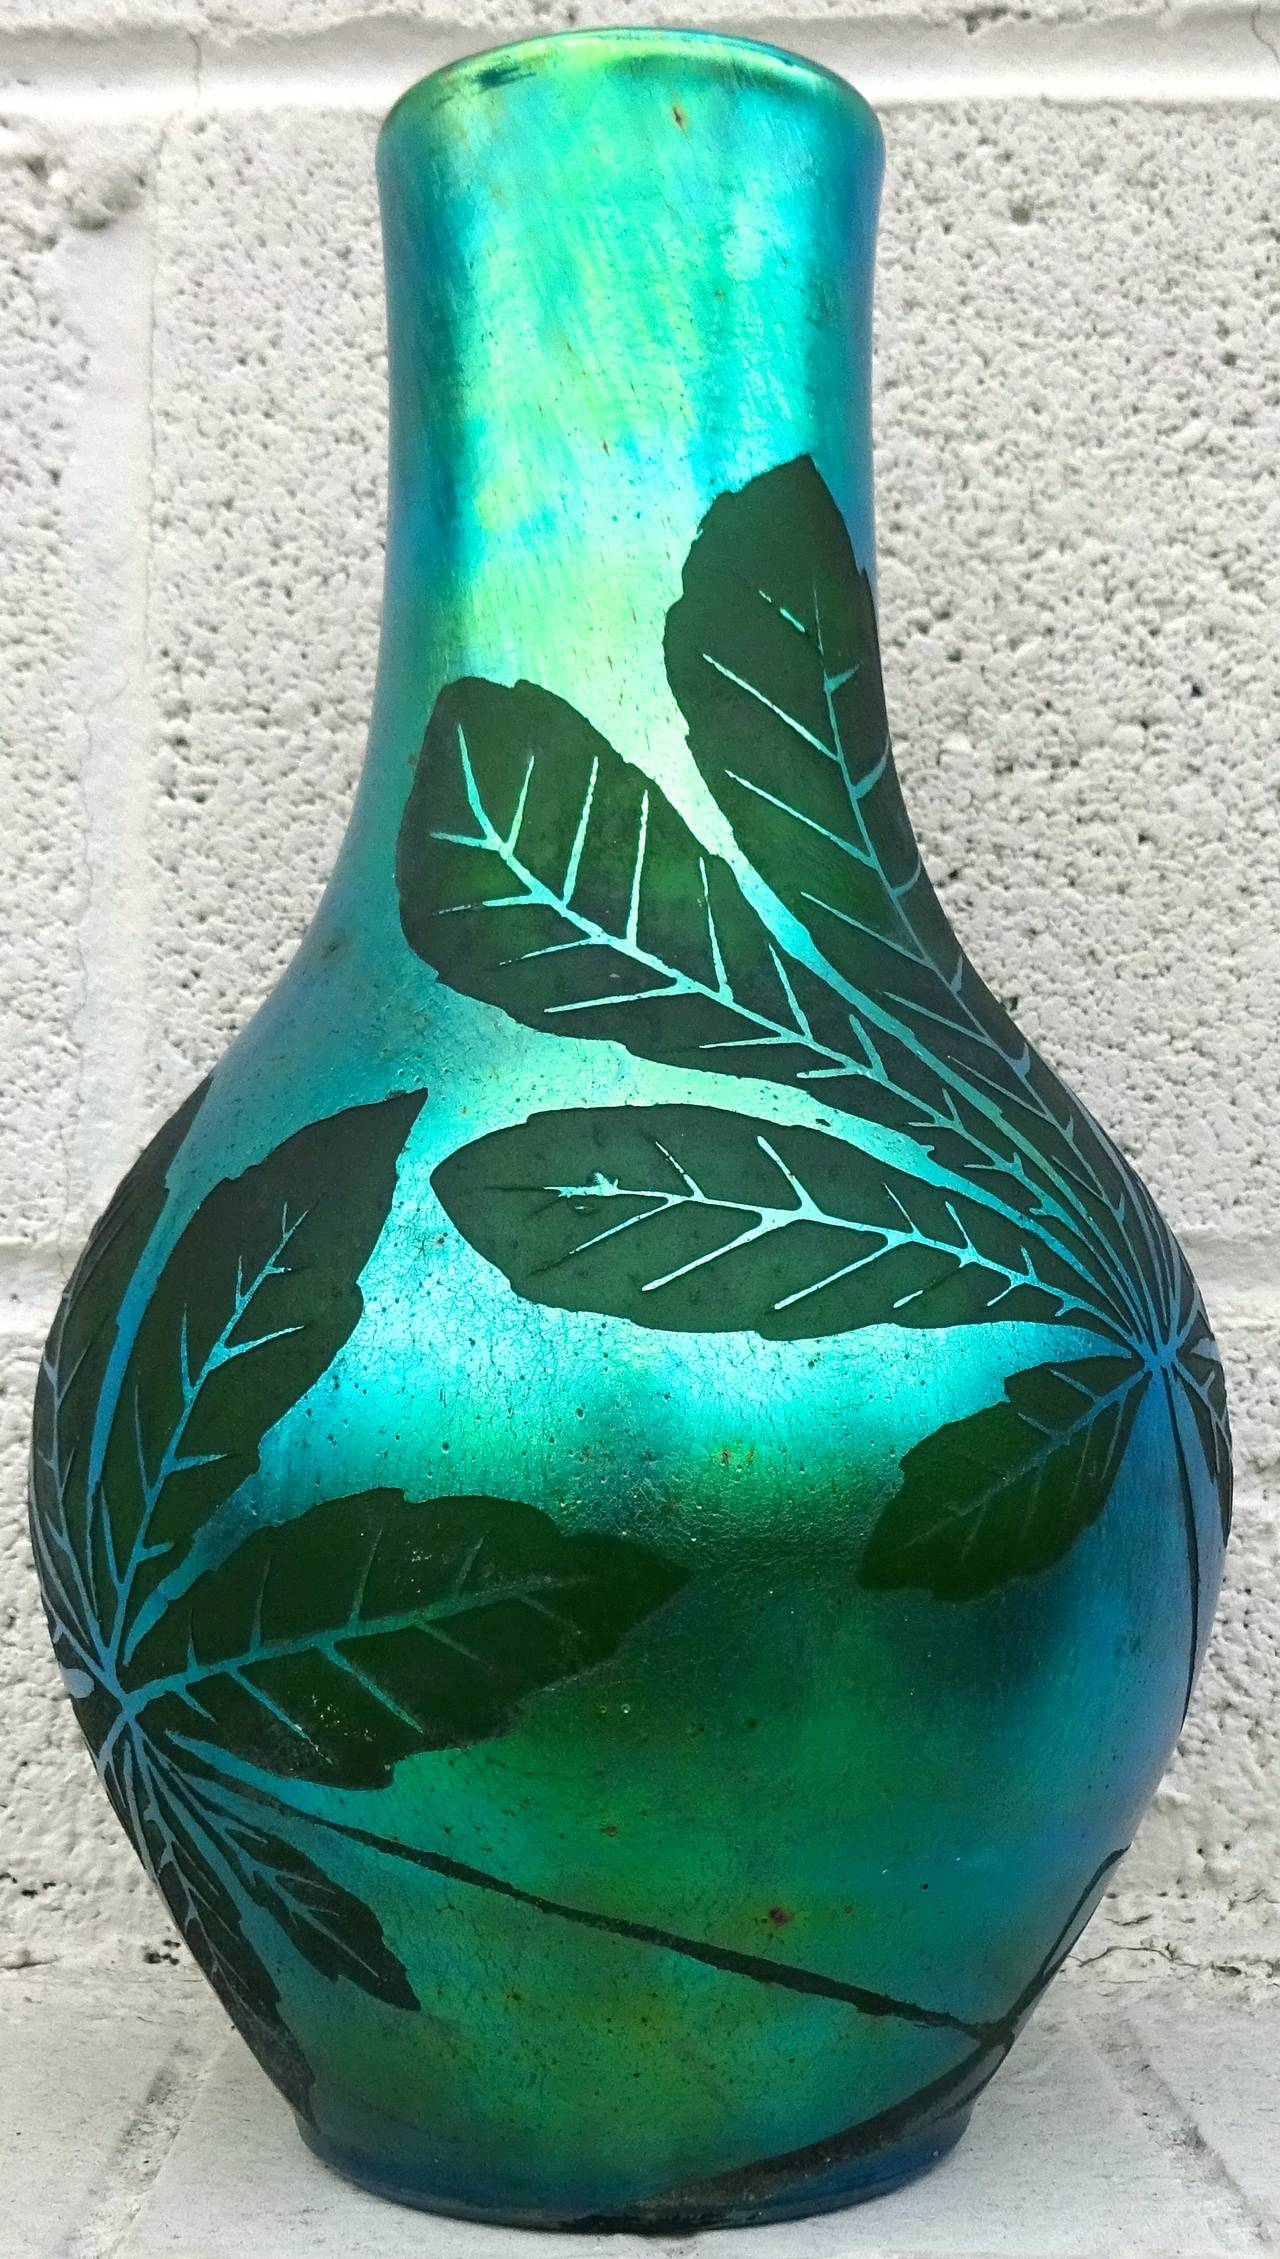 French Deco Iridescent Acid-Etched Art Glass Vase, 1920s In Excellent Condition For Sale In Washington, DC